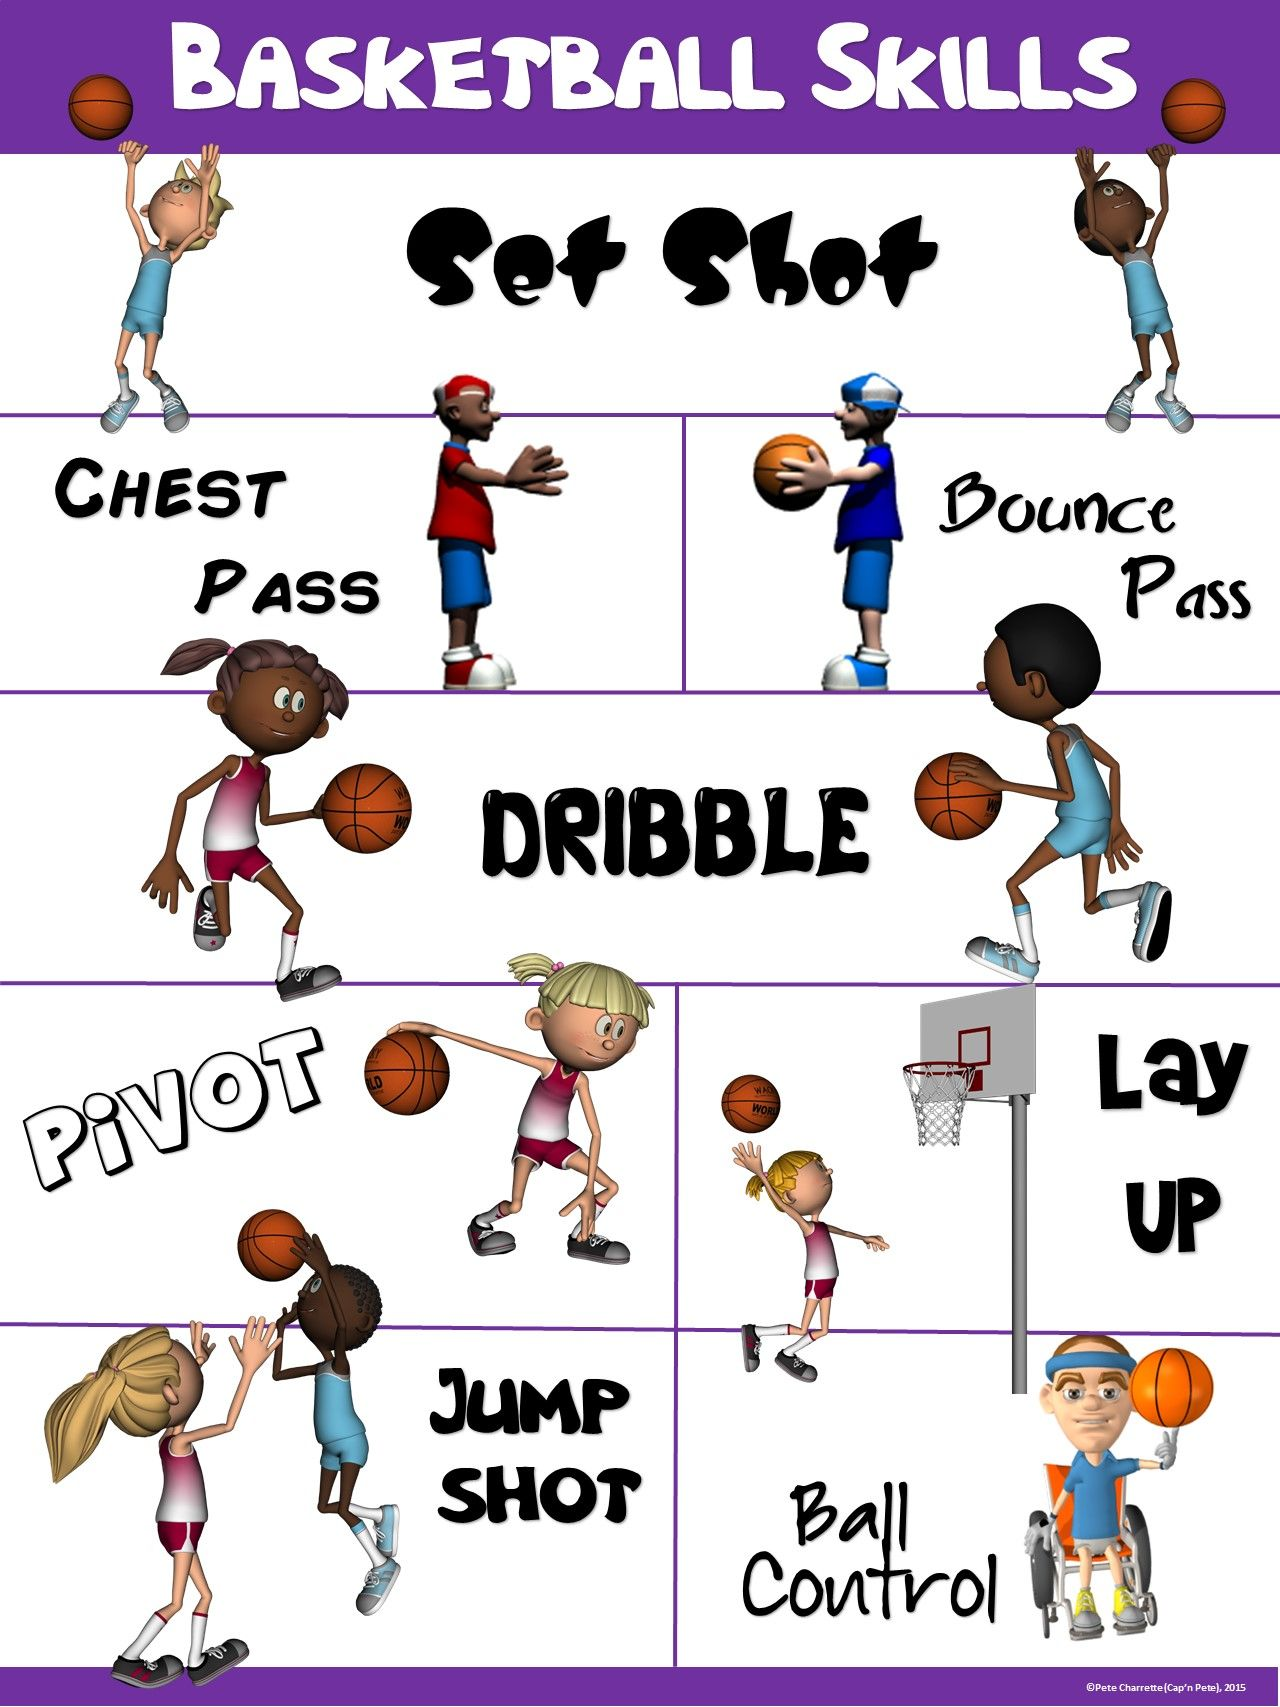 pe poster basketball skills basketball and poster shoot the rock this colorful basketball skills poster identifies 8 different basketball skills that are typically taught and performed in a physical